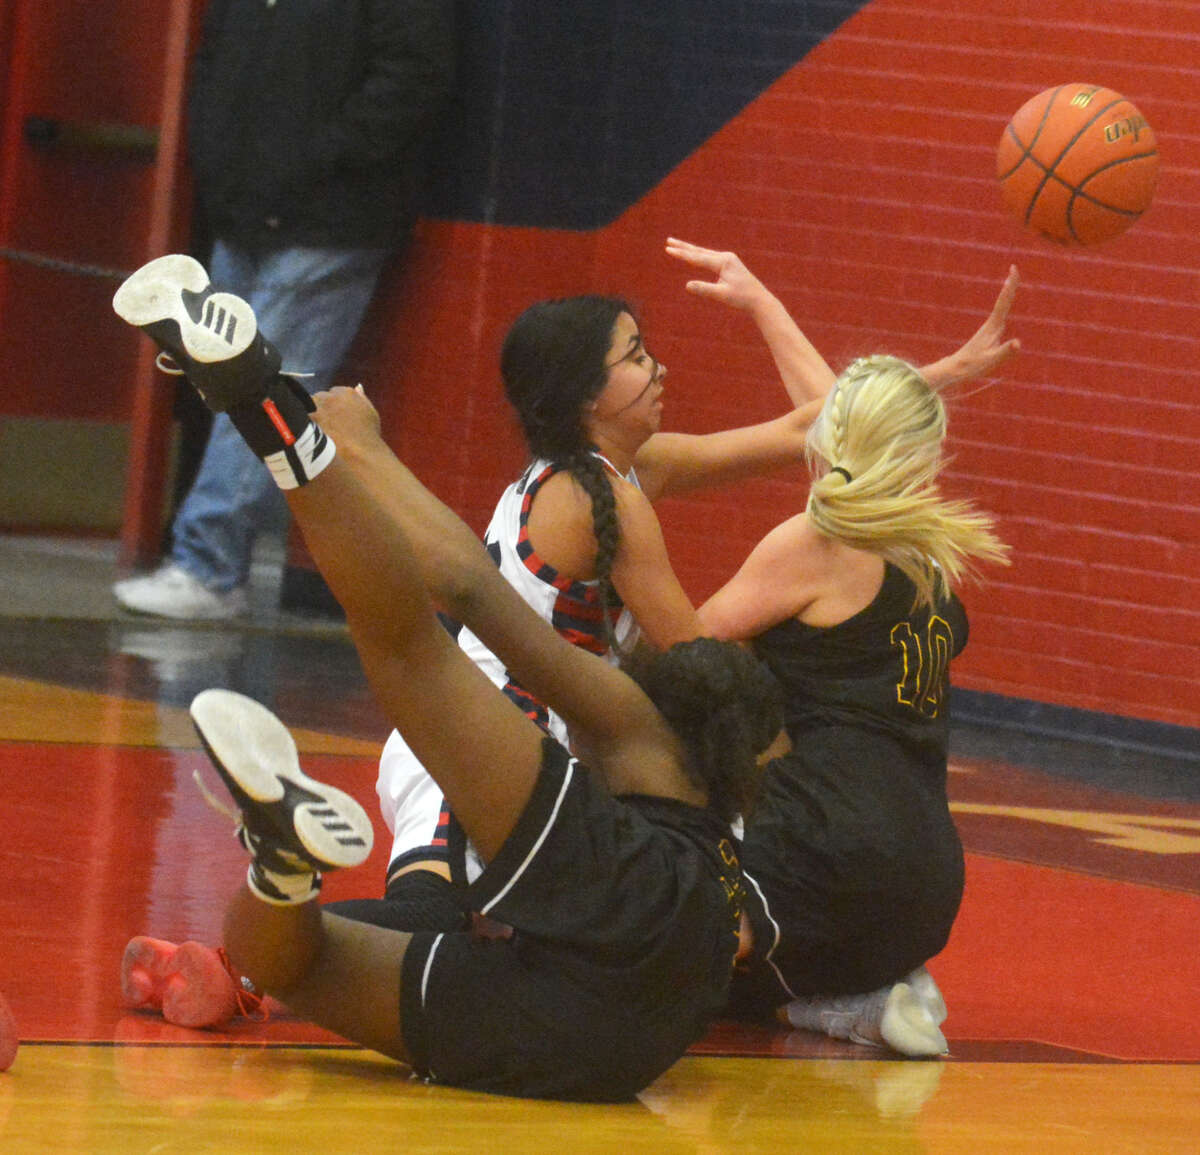 Plainview's Kristan Rincon passes the ball from her knees as she scrambles with two Amarillo High players for possession during a game earlier this season. Amarillo defeated the Lady Bulldogs in the UIL Class 5A regional quarterfinals Tuesday night, 62-41. Rincon led Plainview with 15 points. The Lady Bulldogs finish their season with a 22-15 record.